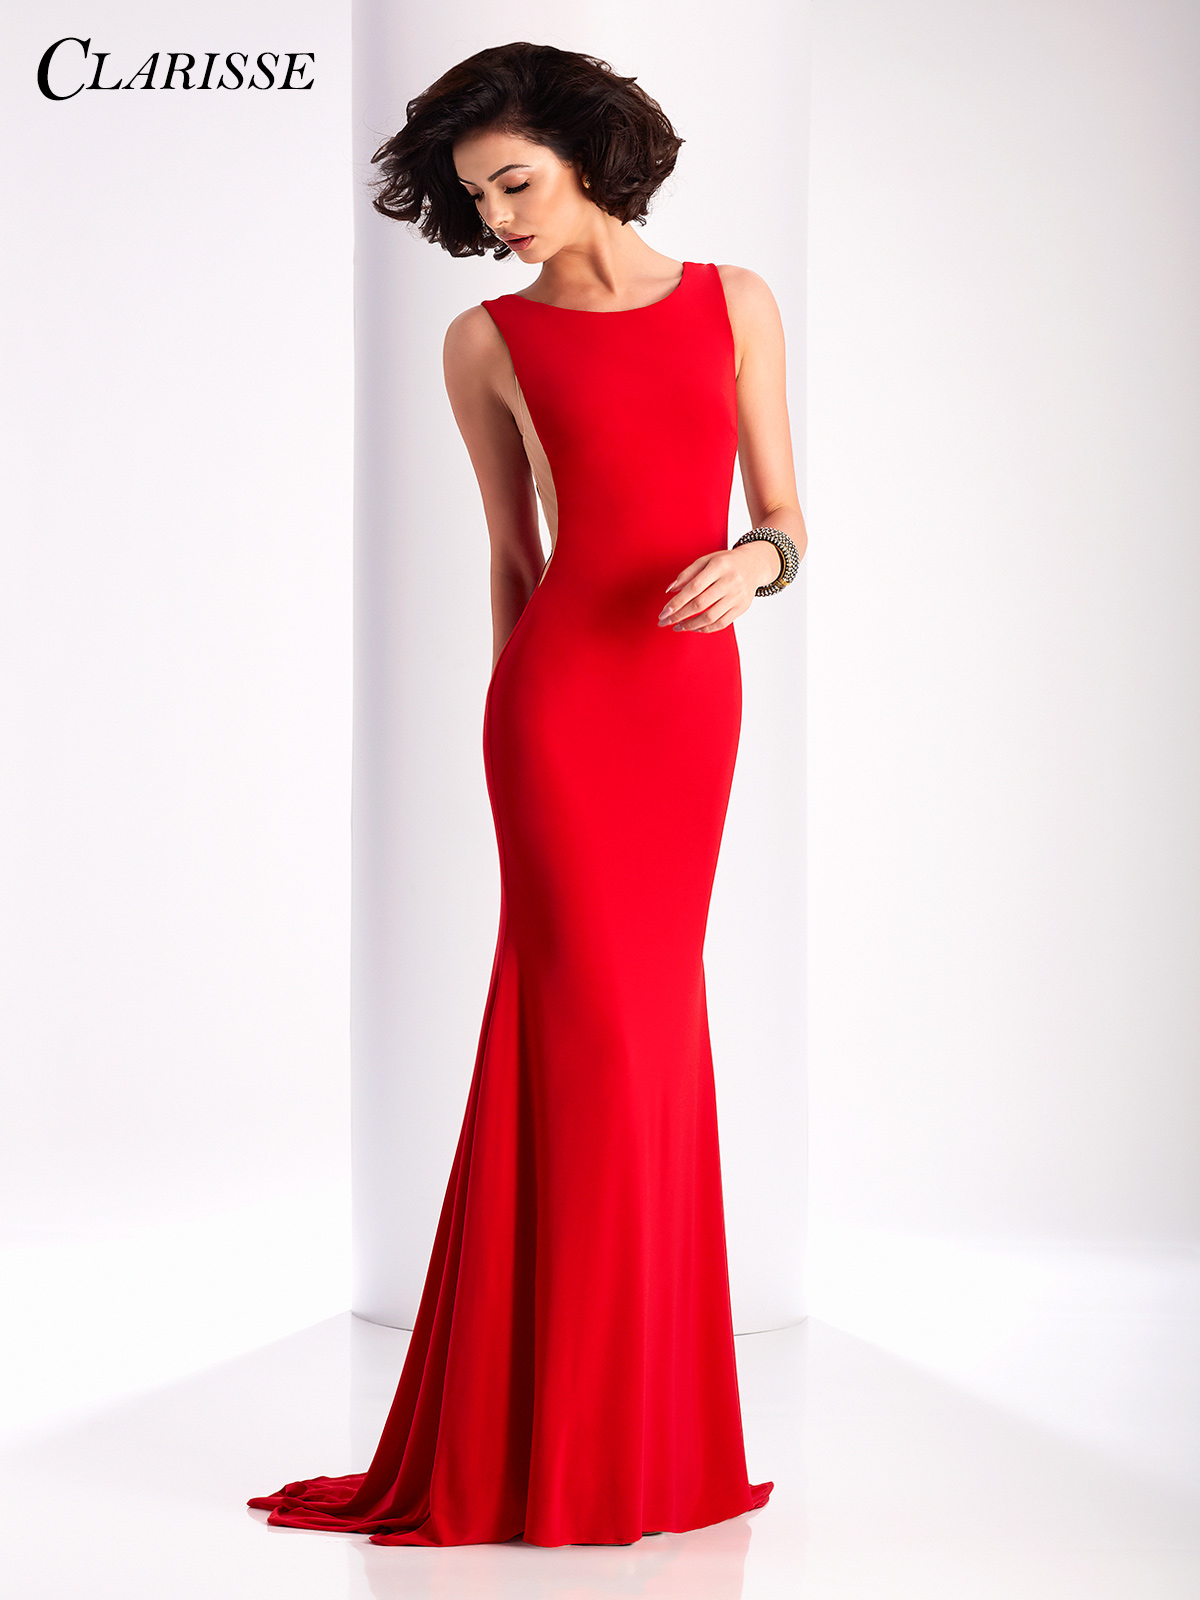 Clarisse Prom Dress 3095 | Promgirl.net